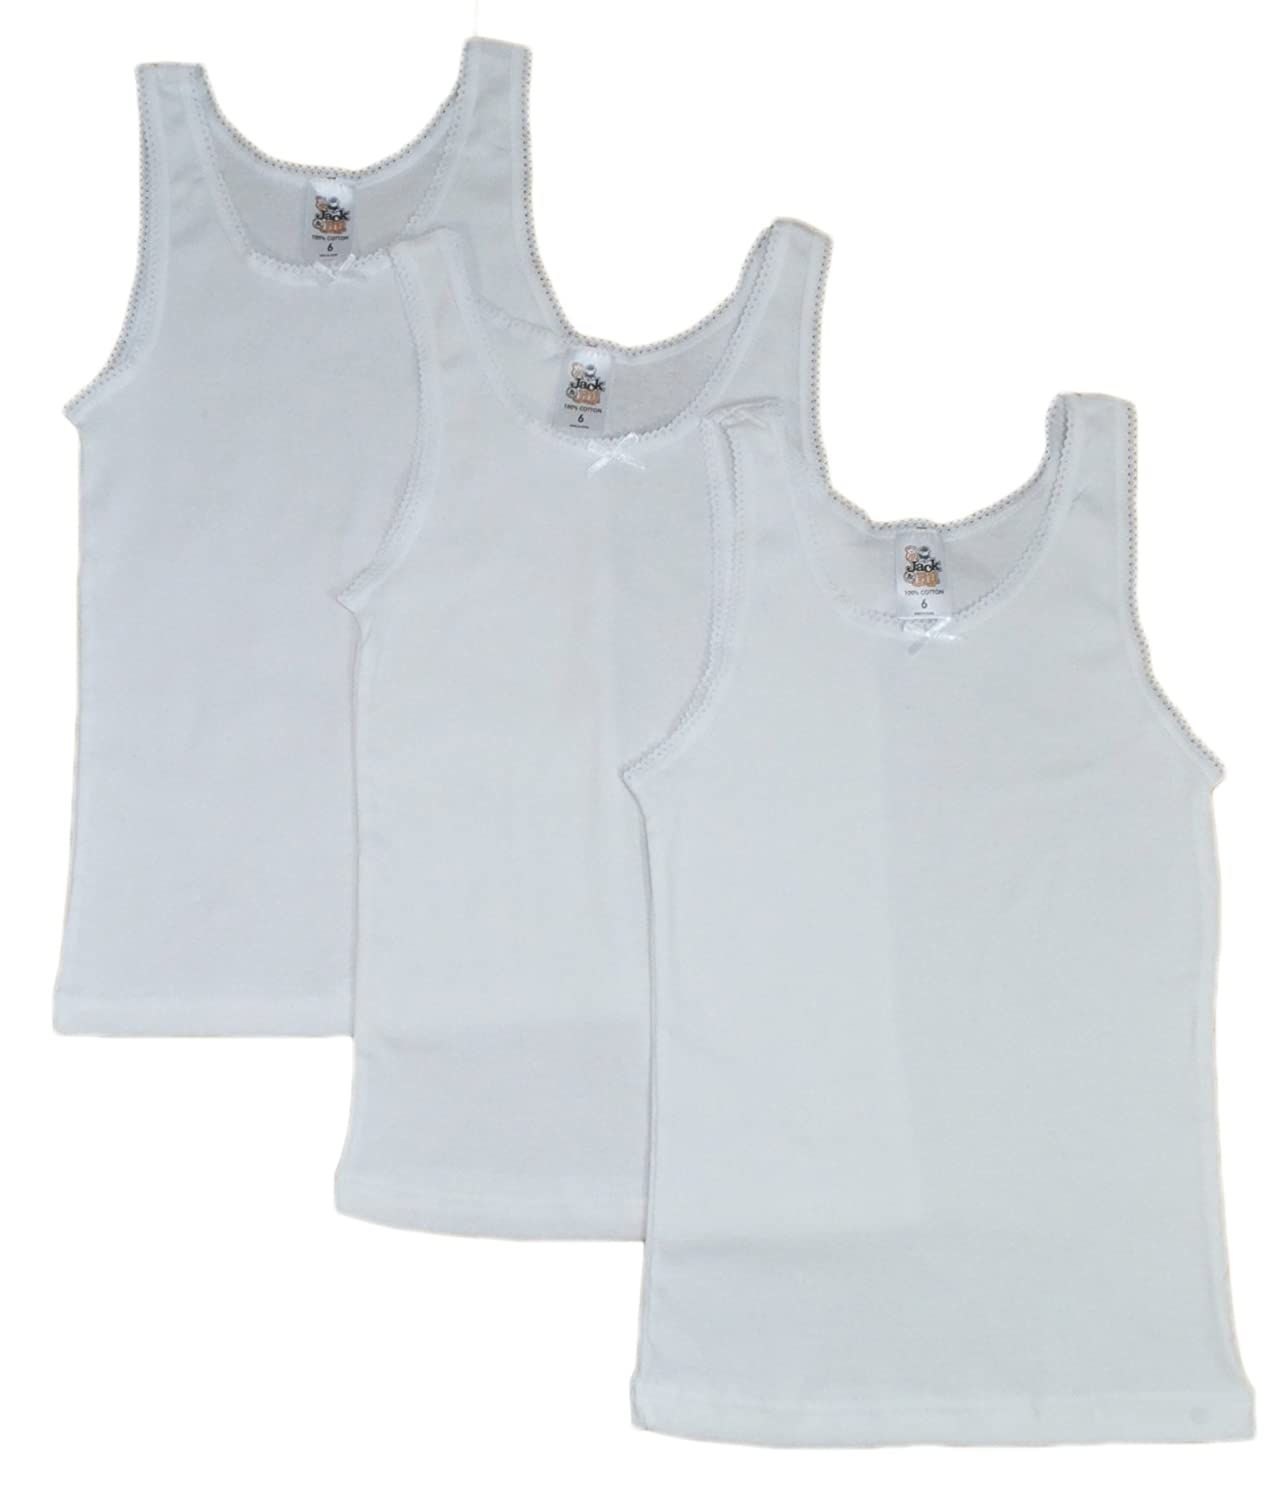 Jack & Jill Underwear Girls Top Camisole-3 Pack-White (White)